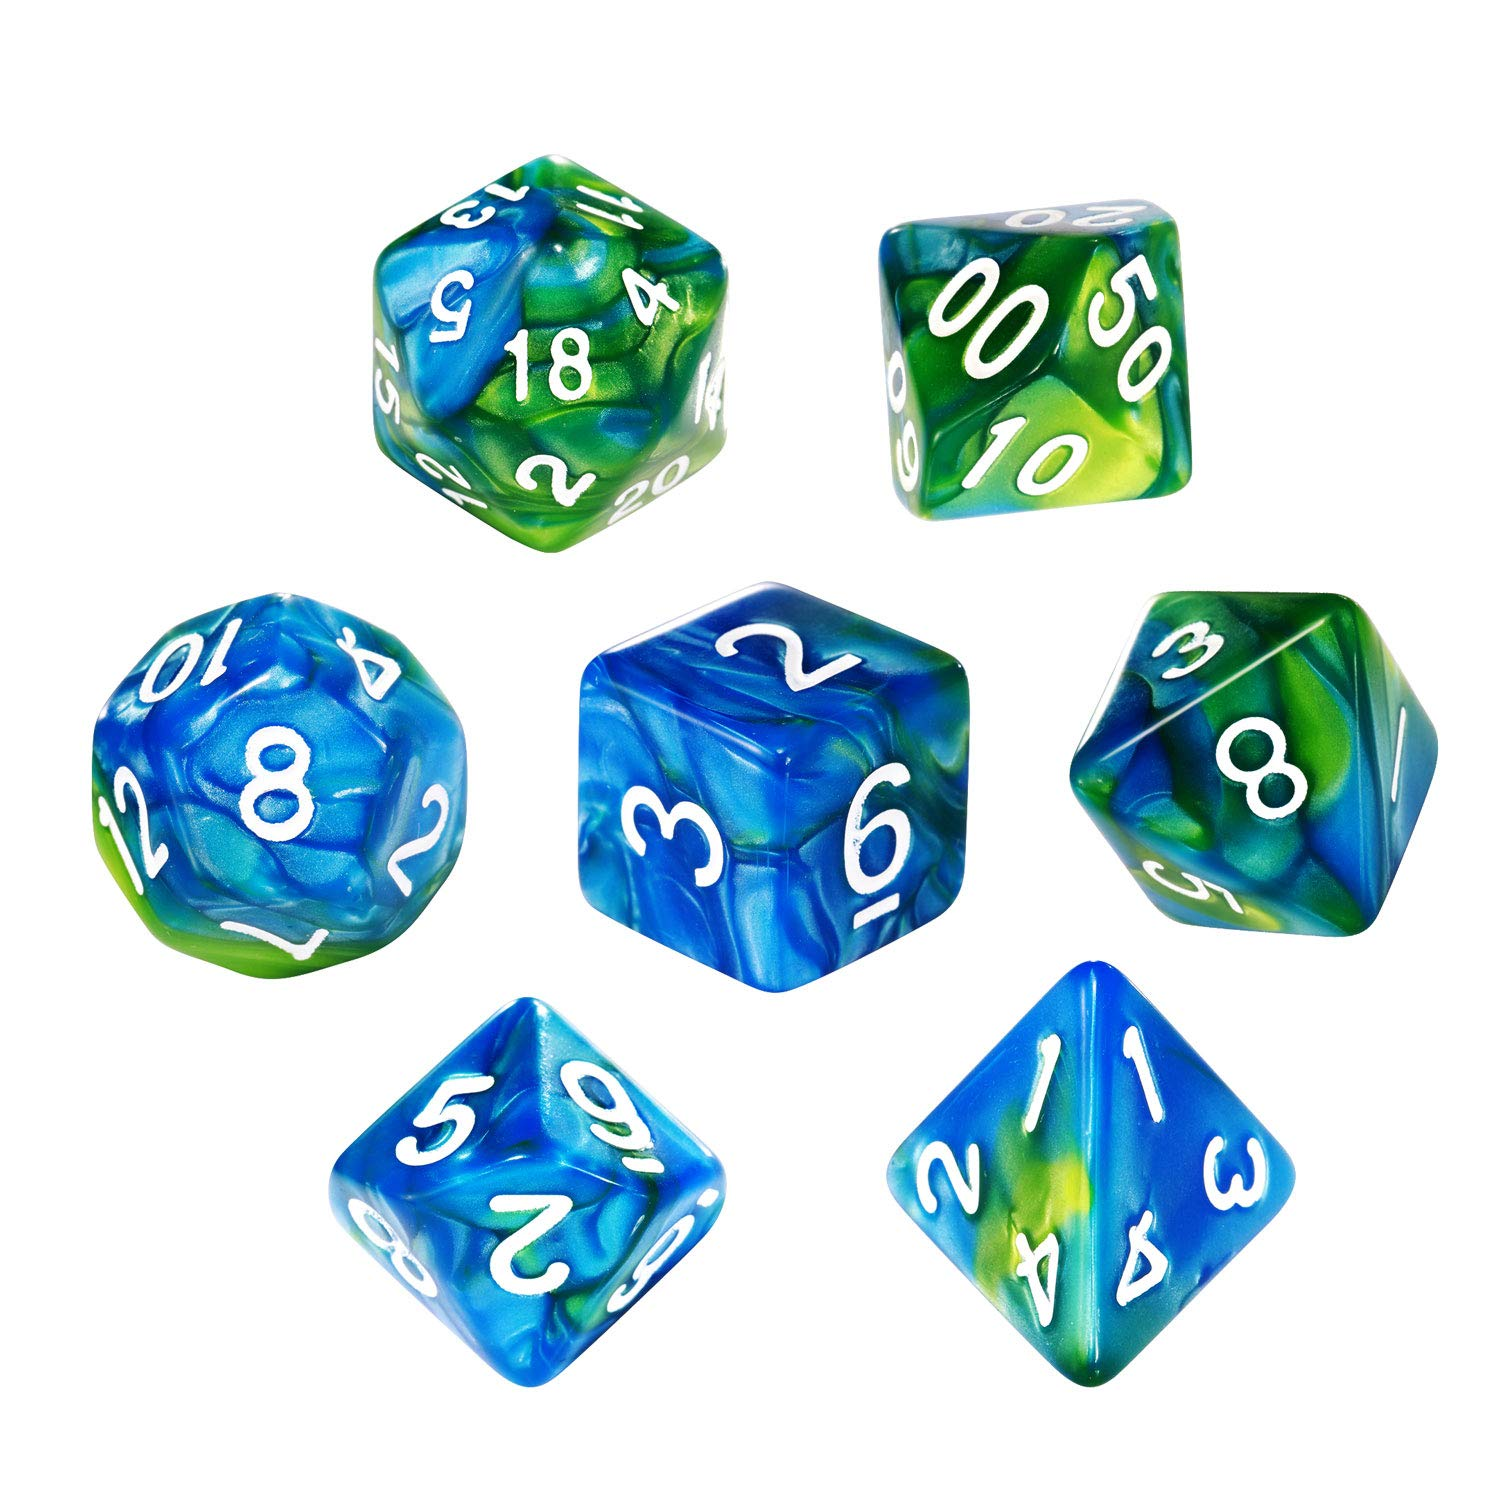 Double-Color Dice Polyhedral Dice Set Blue Green Dungeons and Dragons Dice Set for D/&D Dice Games RPG MTG Table Games with Drawstring Pouch CiaraQ DND Dice Set